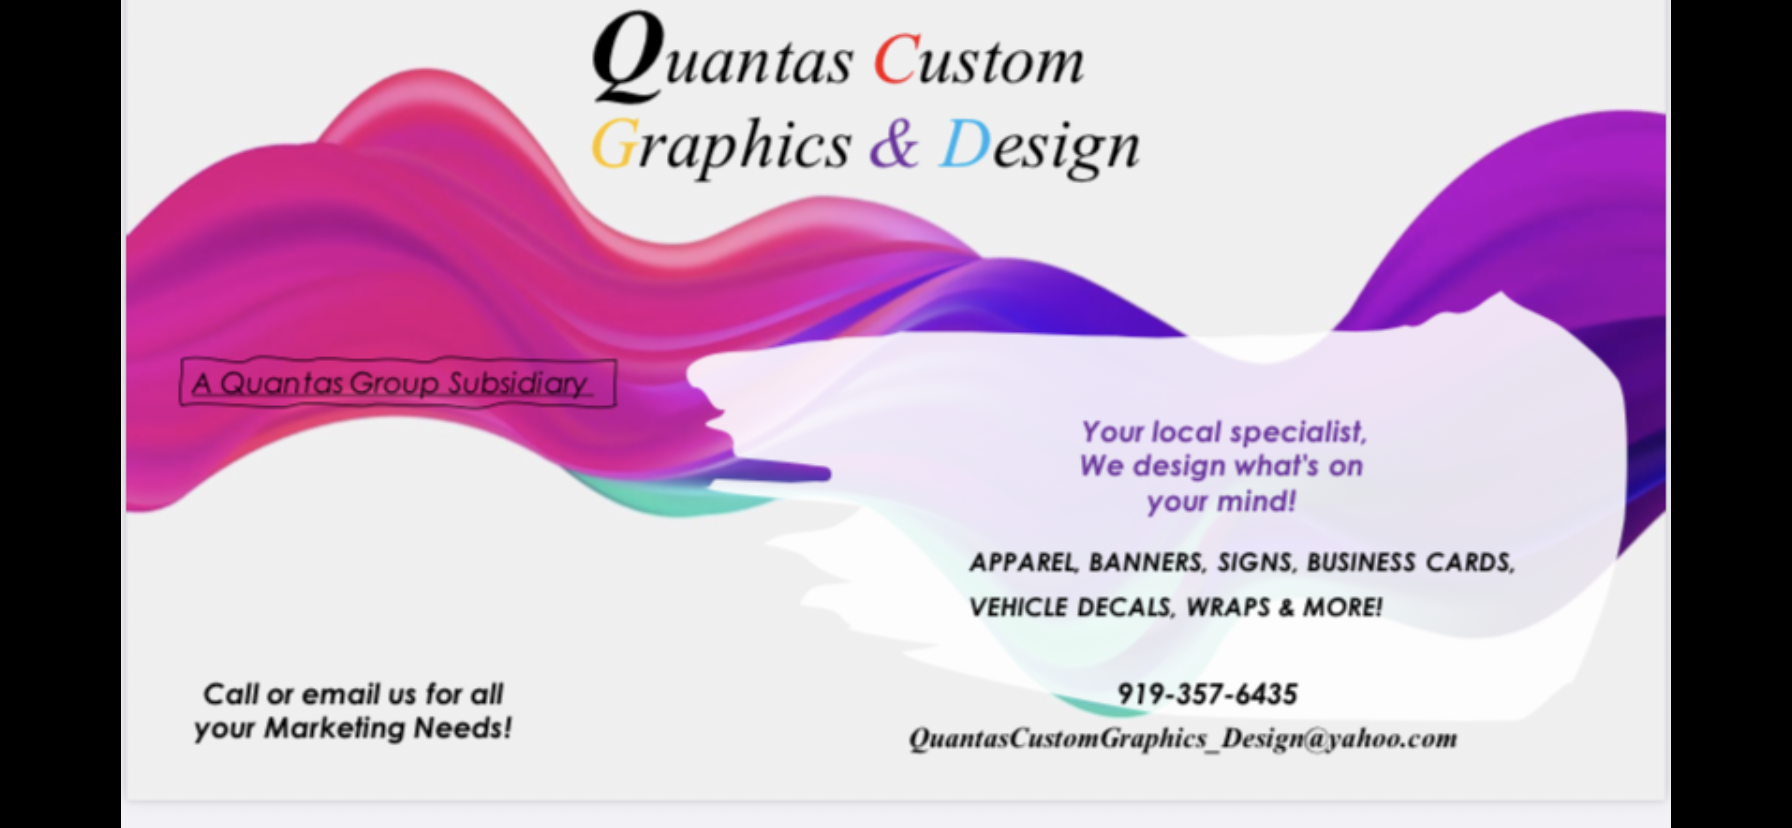 Quantas Custom Graphics & Design